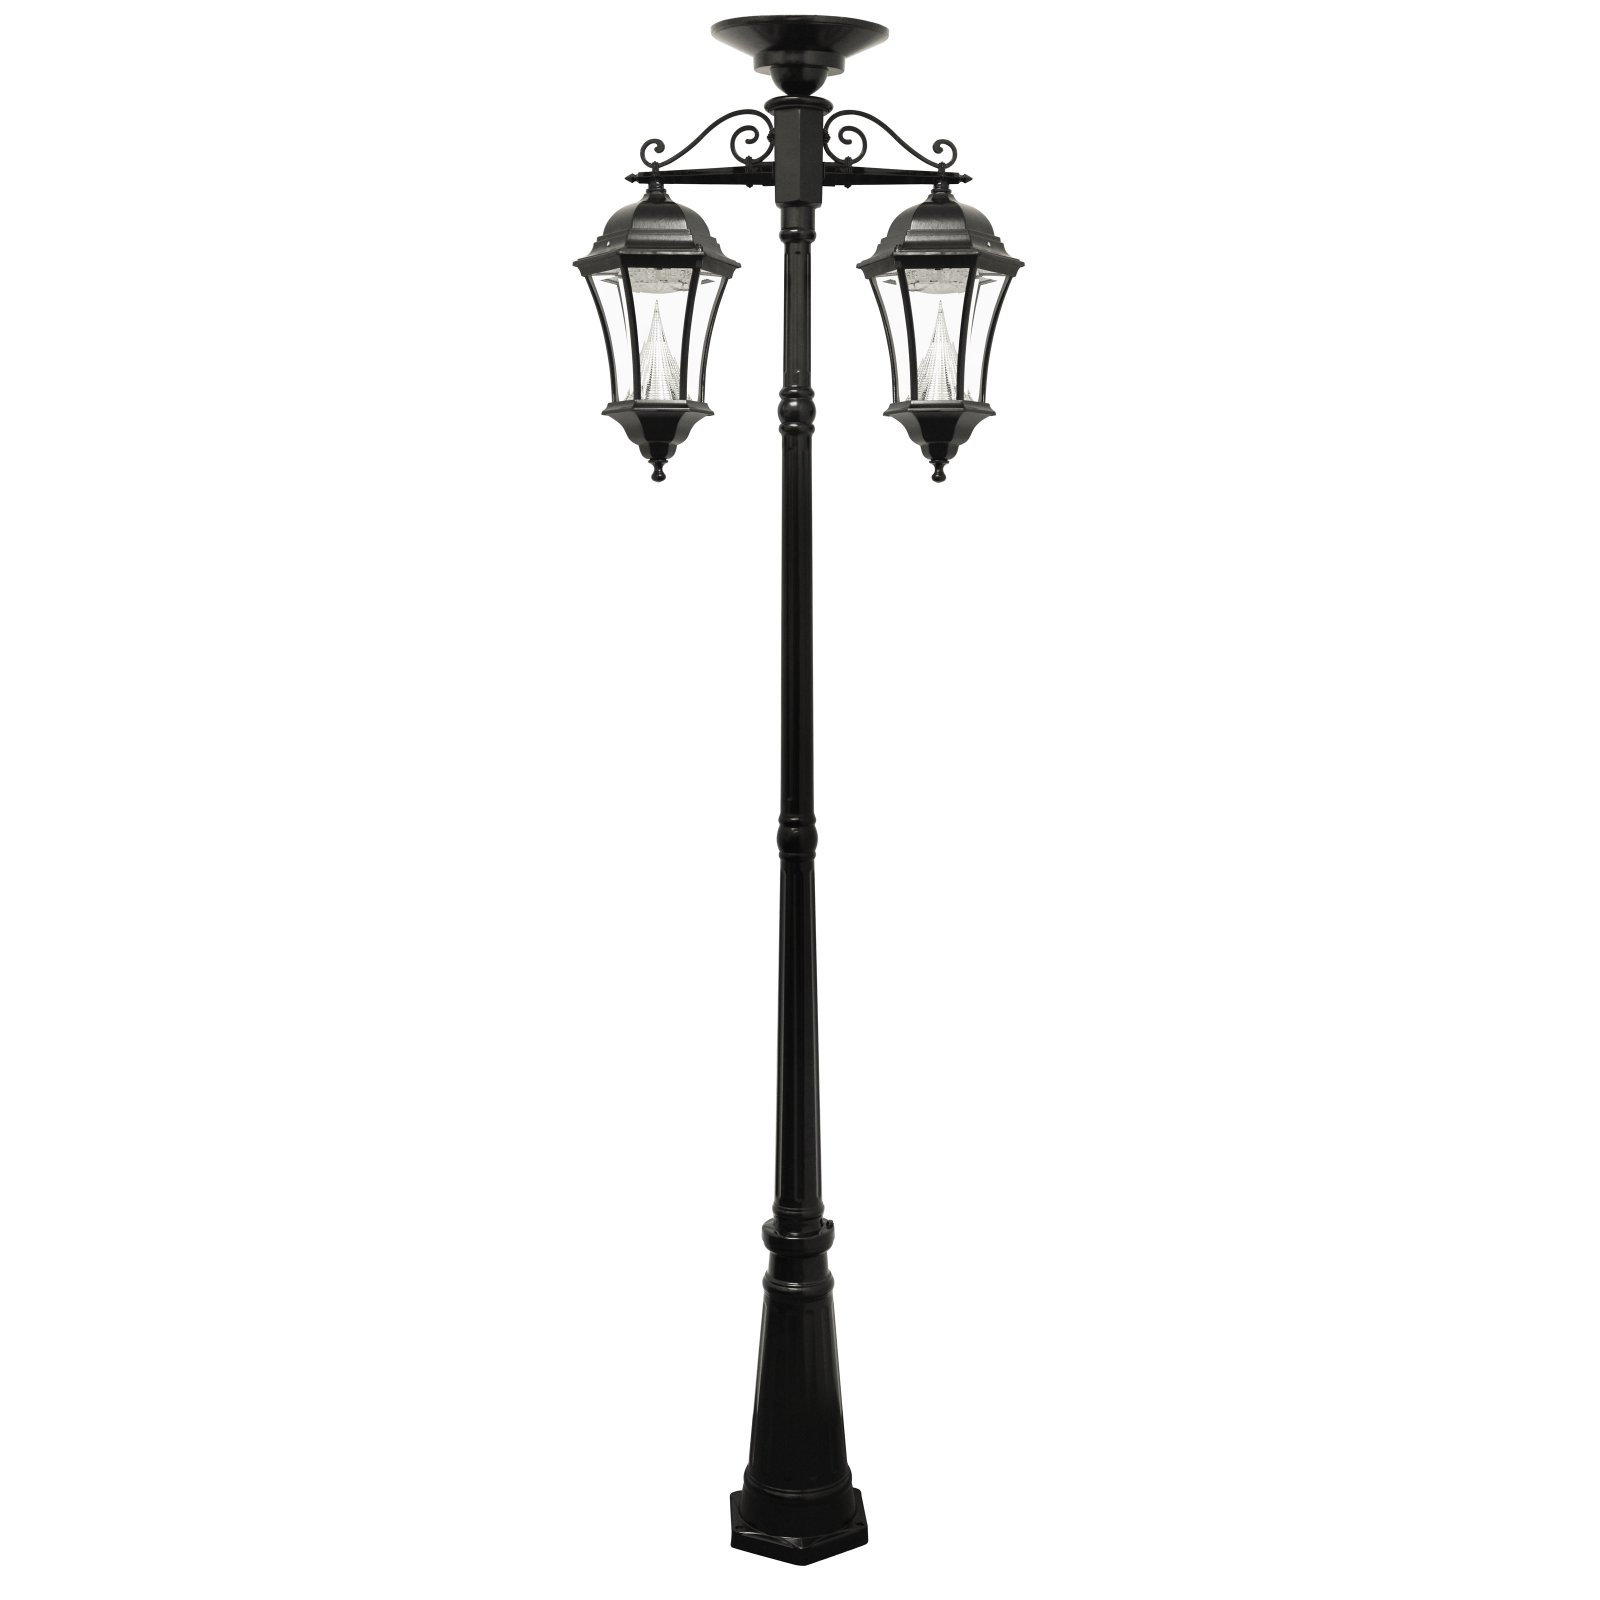 Gama Sonic Victorian Solar Lamp Post Double Downward Hanging LED Lamps